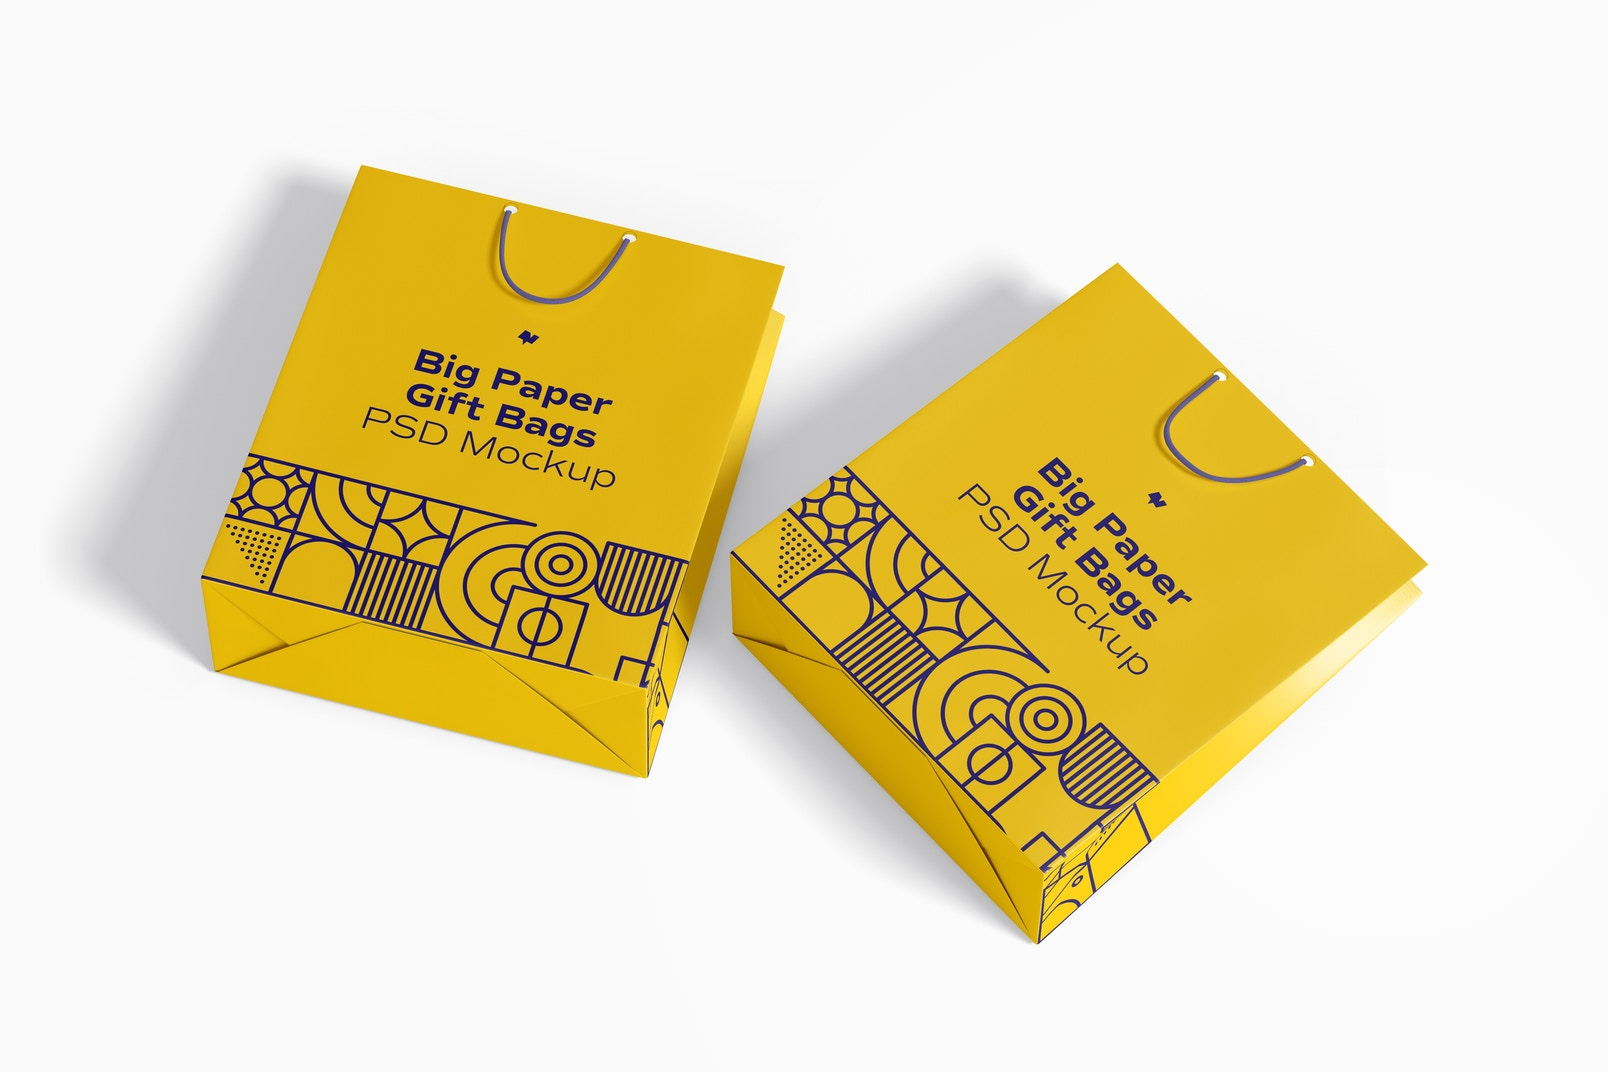 Big Paper Gift Bags With Rope Handle Mockup, Top View